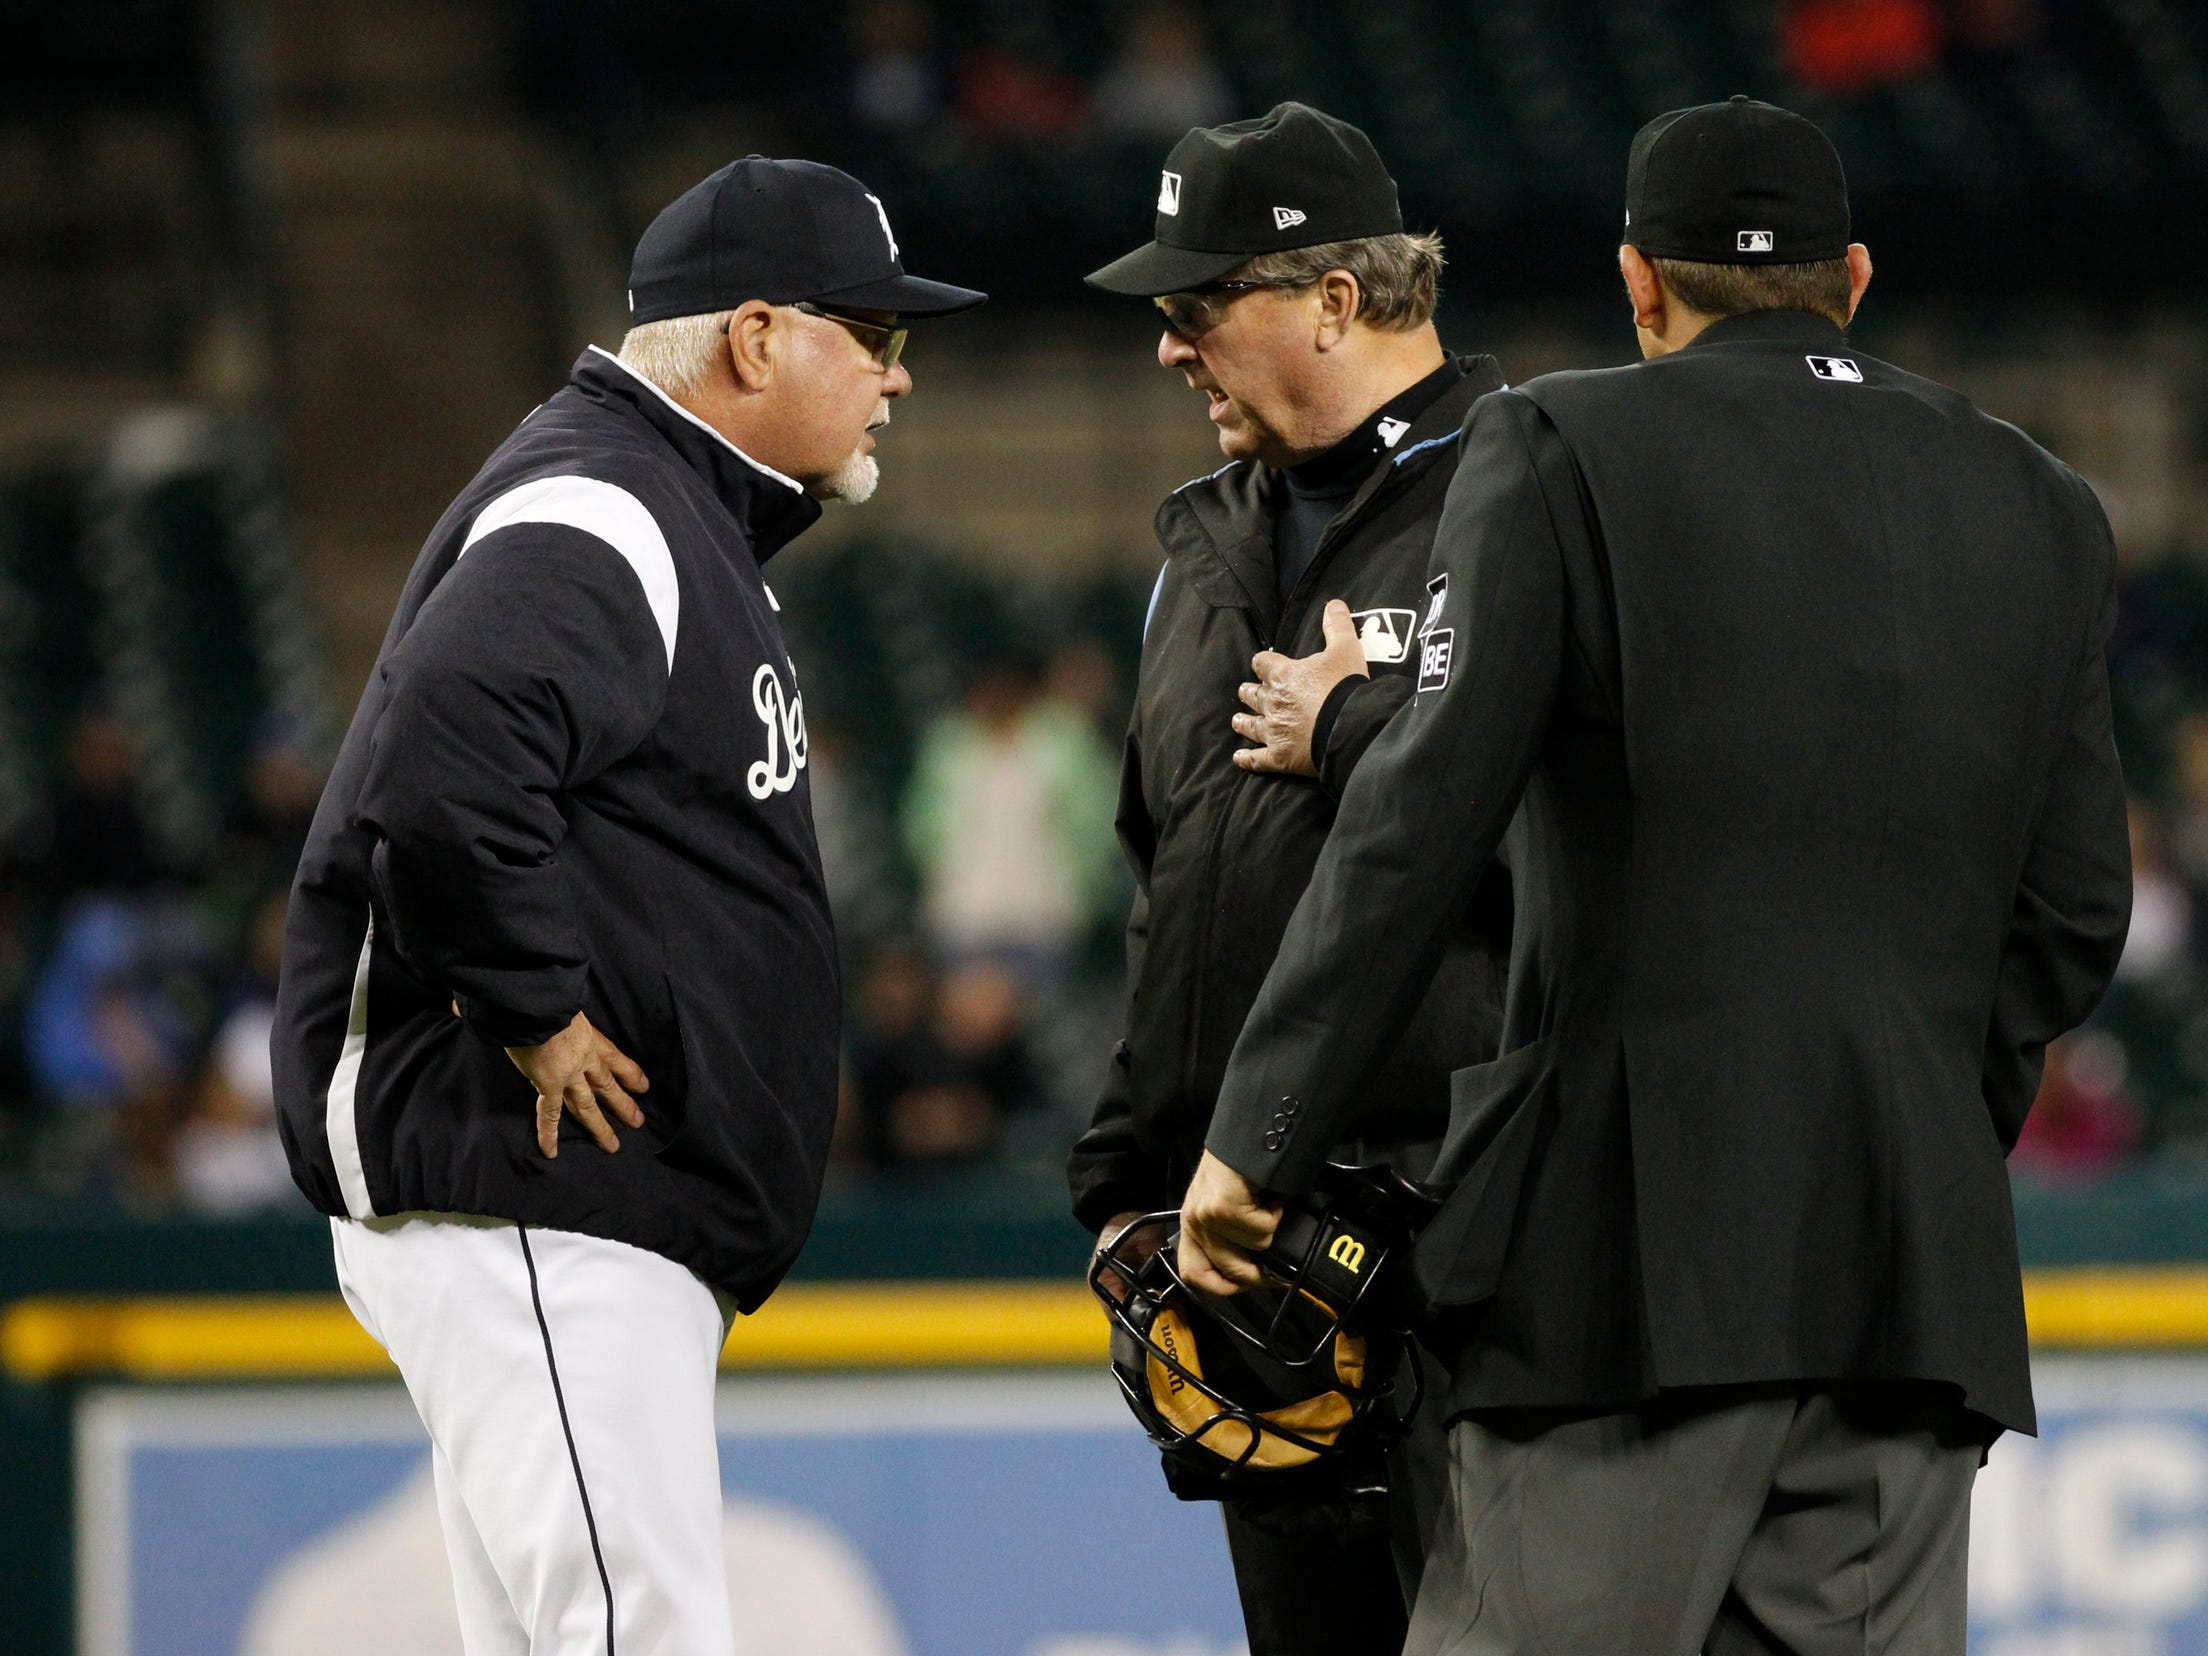 Tigers manager Ron Gardenhire argues an eighth inning call as the Detroit Tigers take on the Houston Astros on Monday, Sept. 10, 2018, at Comerica Park.